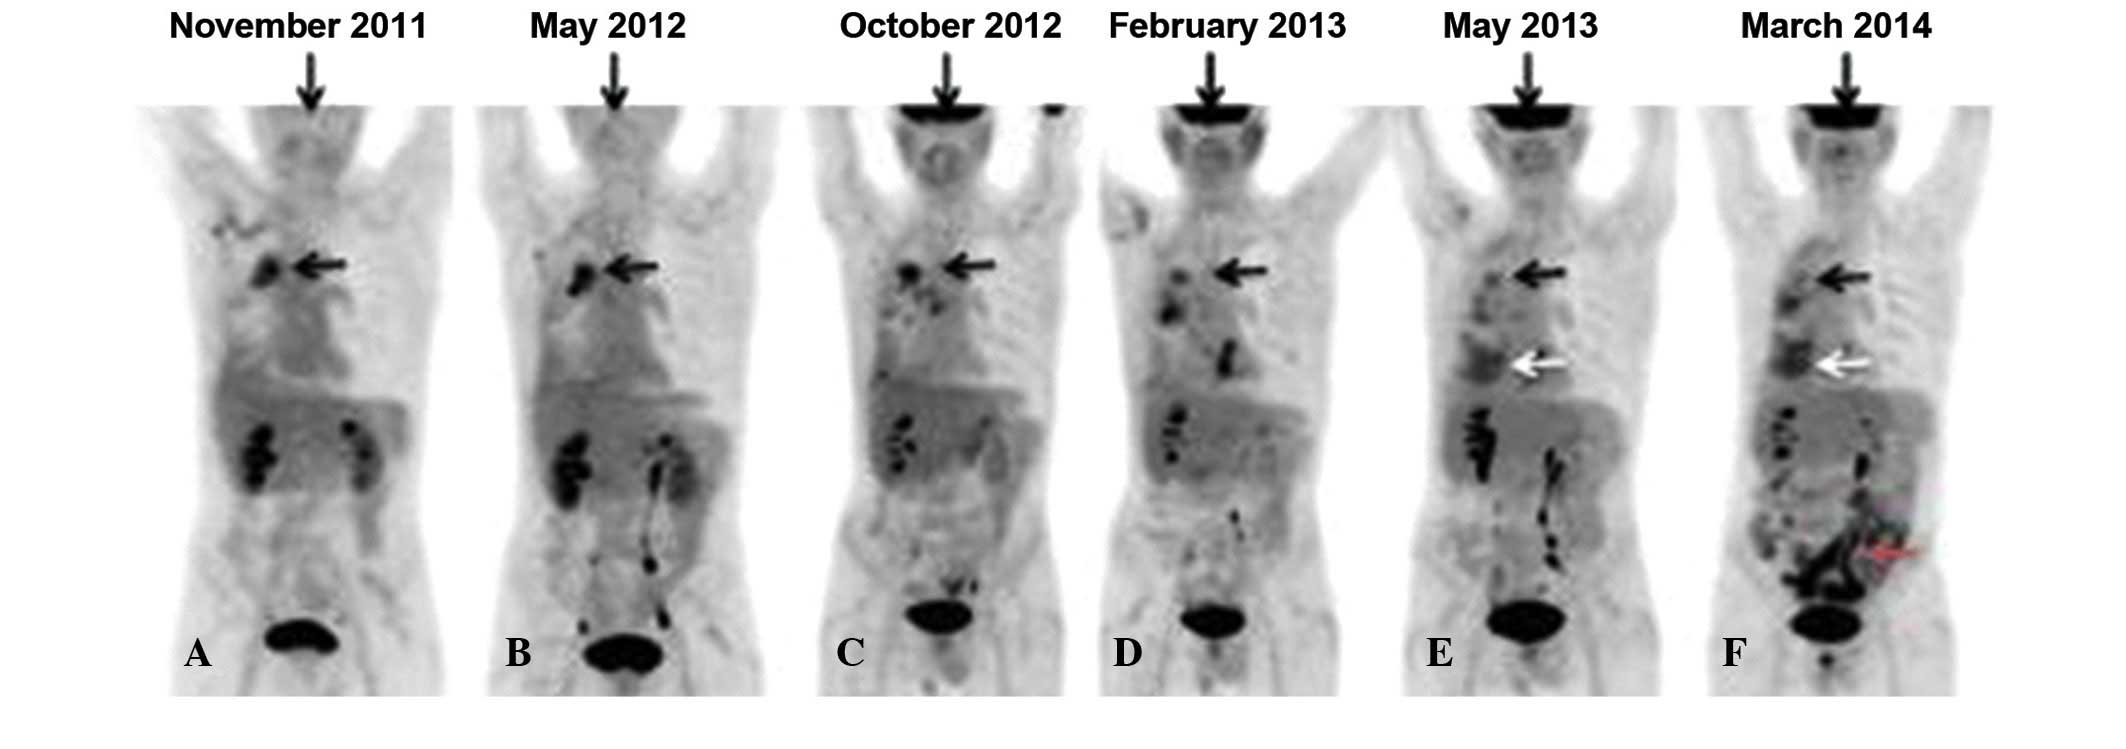 Small bowel metastasis from pancreatic cancer in a long